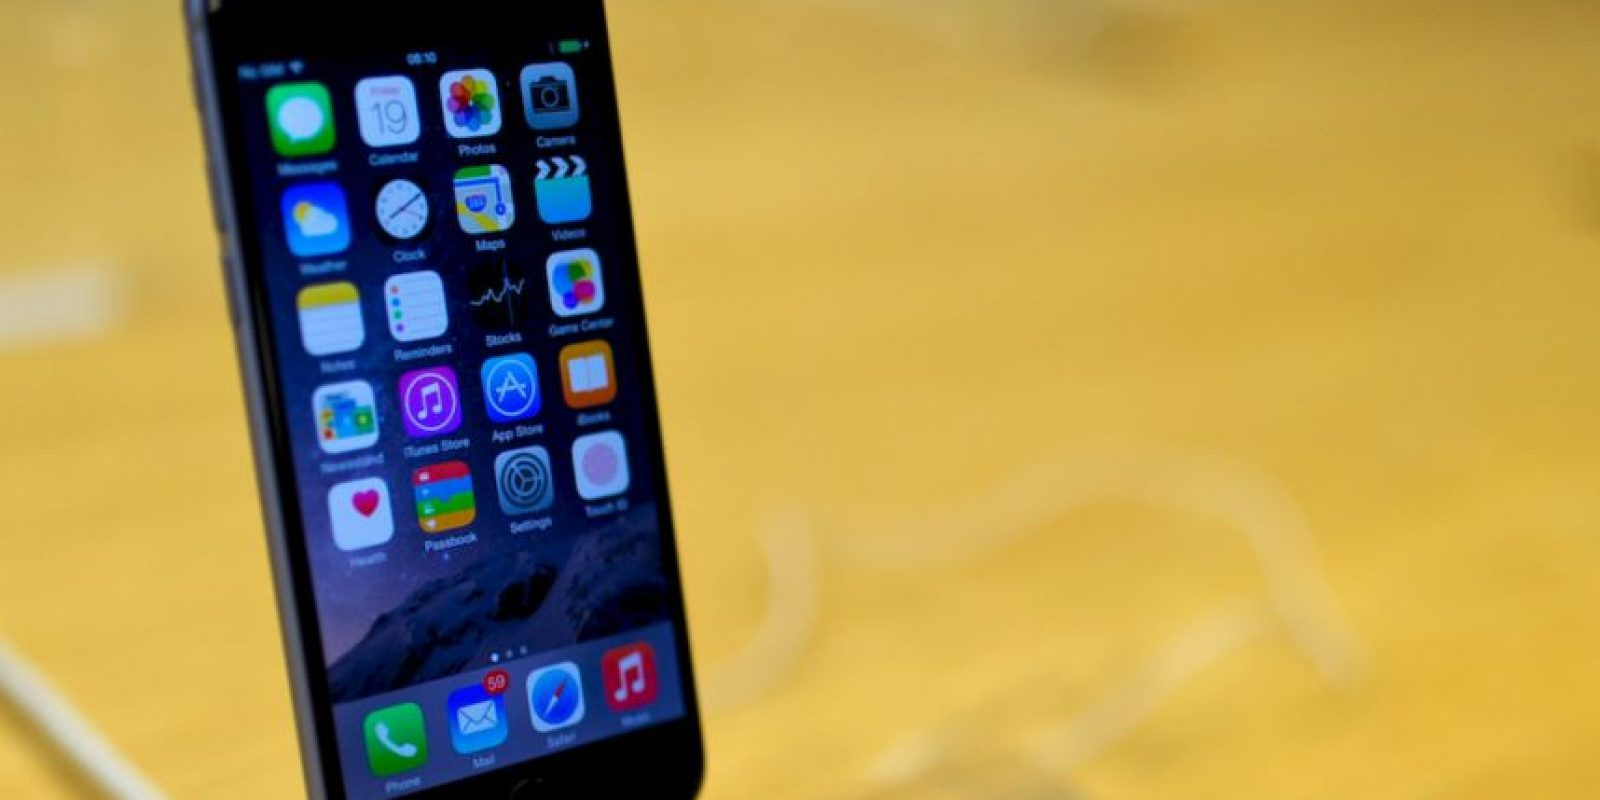 iPhone 6 (2014) Foto:Getty Images